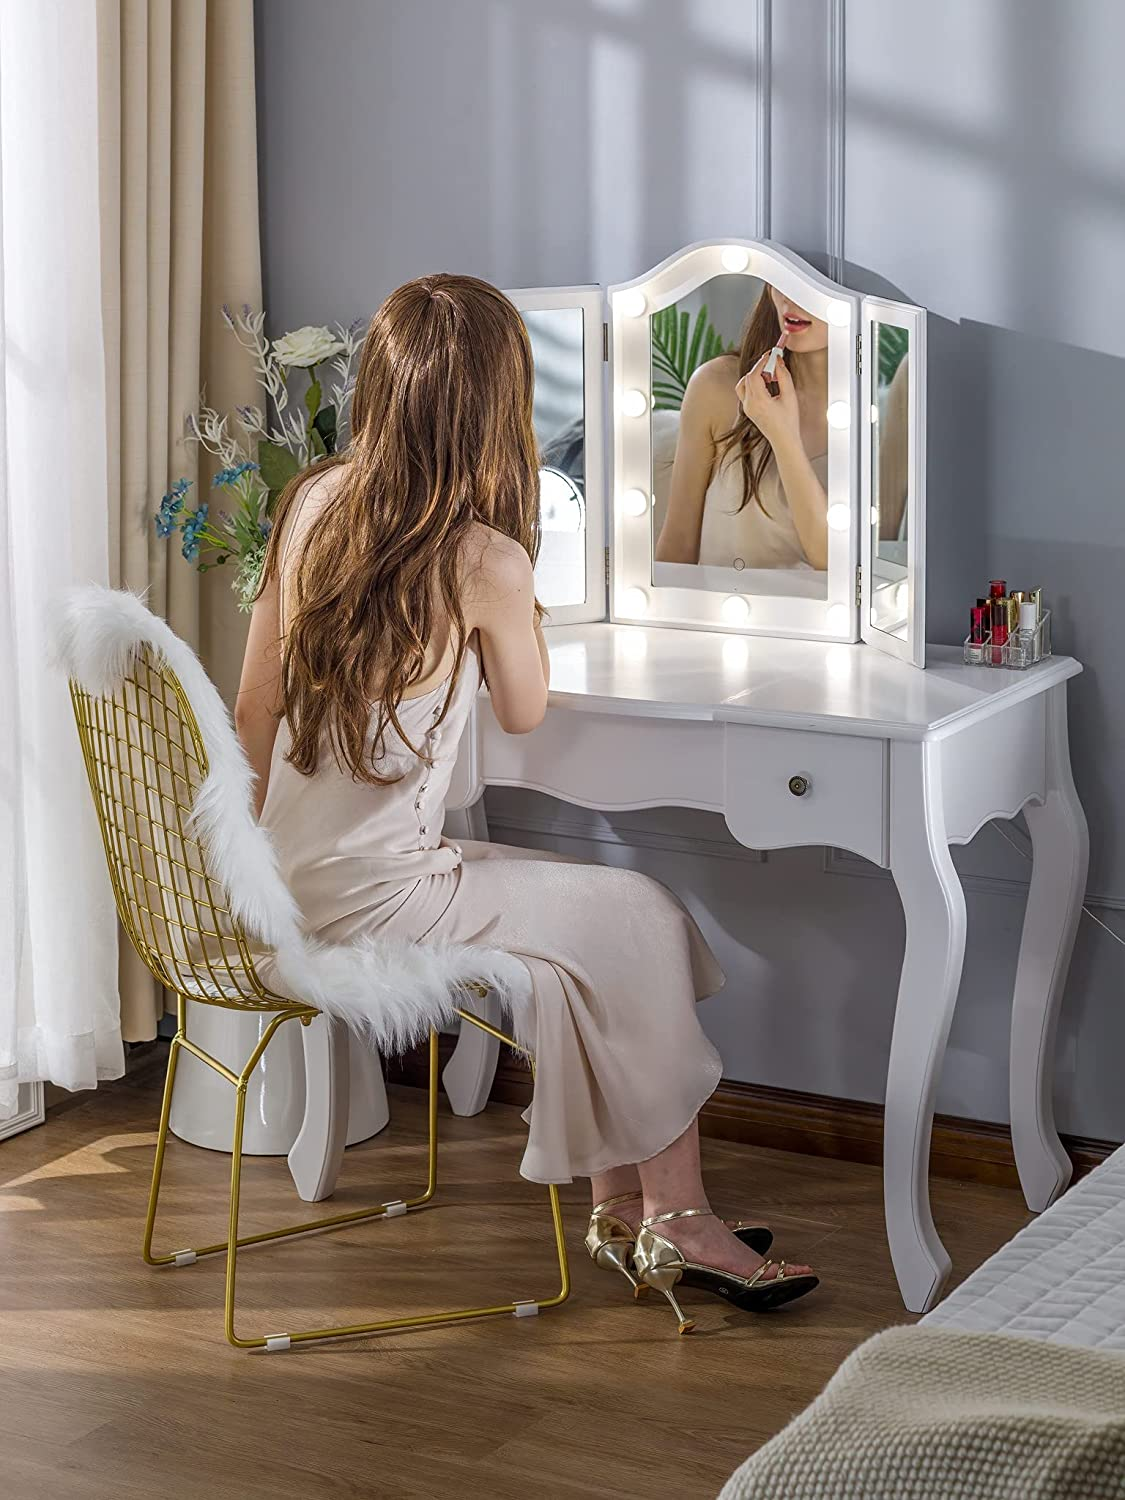 Tri-Fold Makeup Mirror with 10 Dimmable LED Bulbs! .92 (REG: 9.90) at Amazon with coupon and code: Y7AONZYR